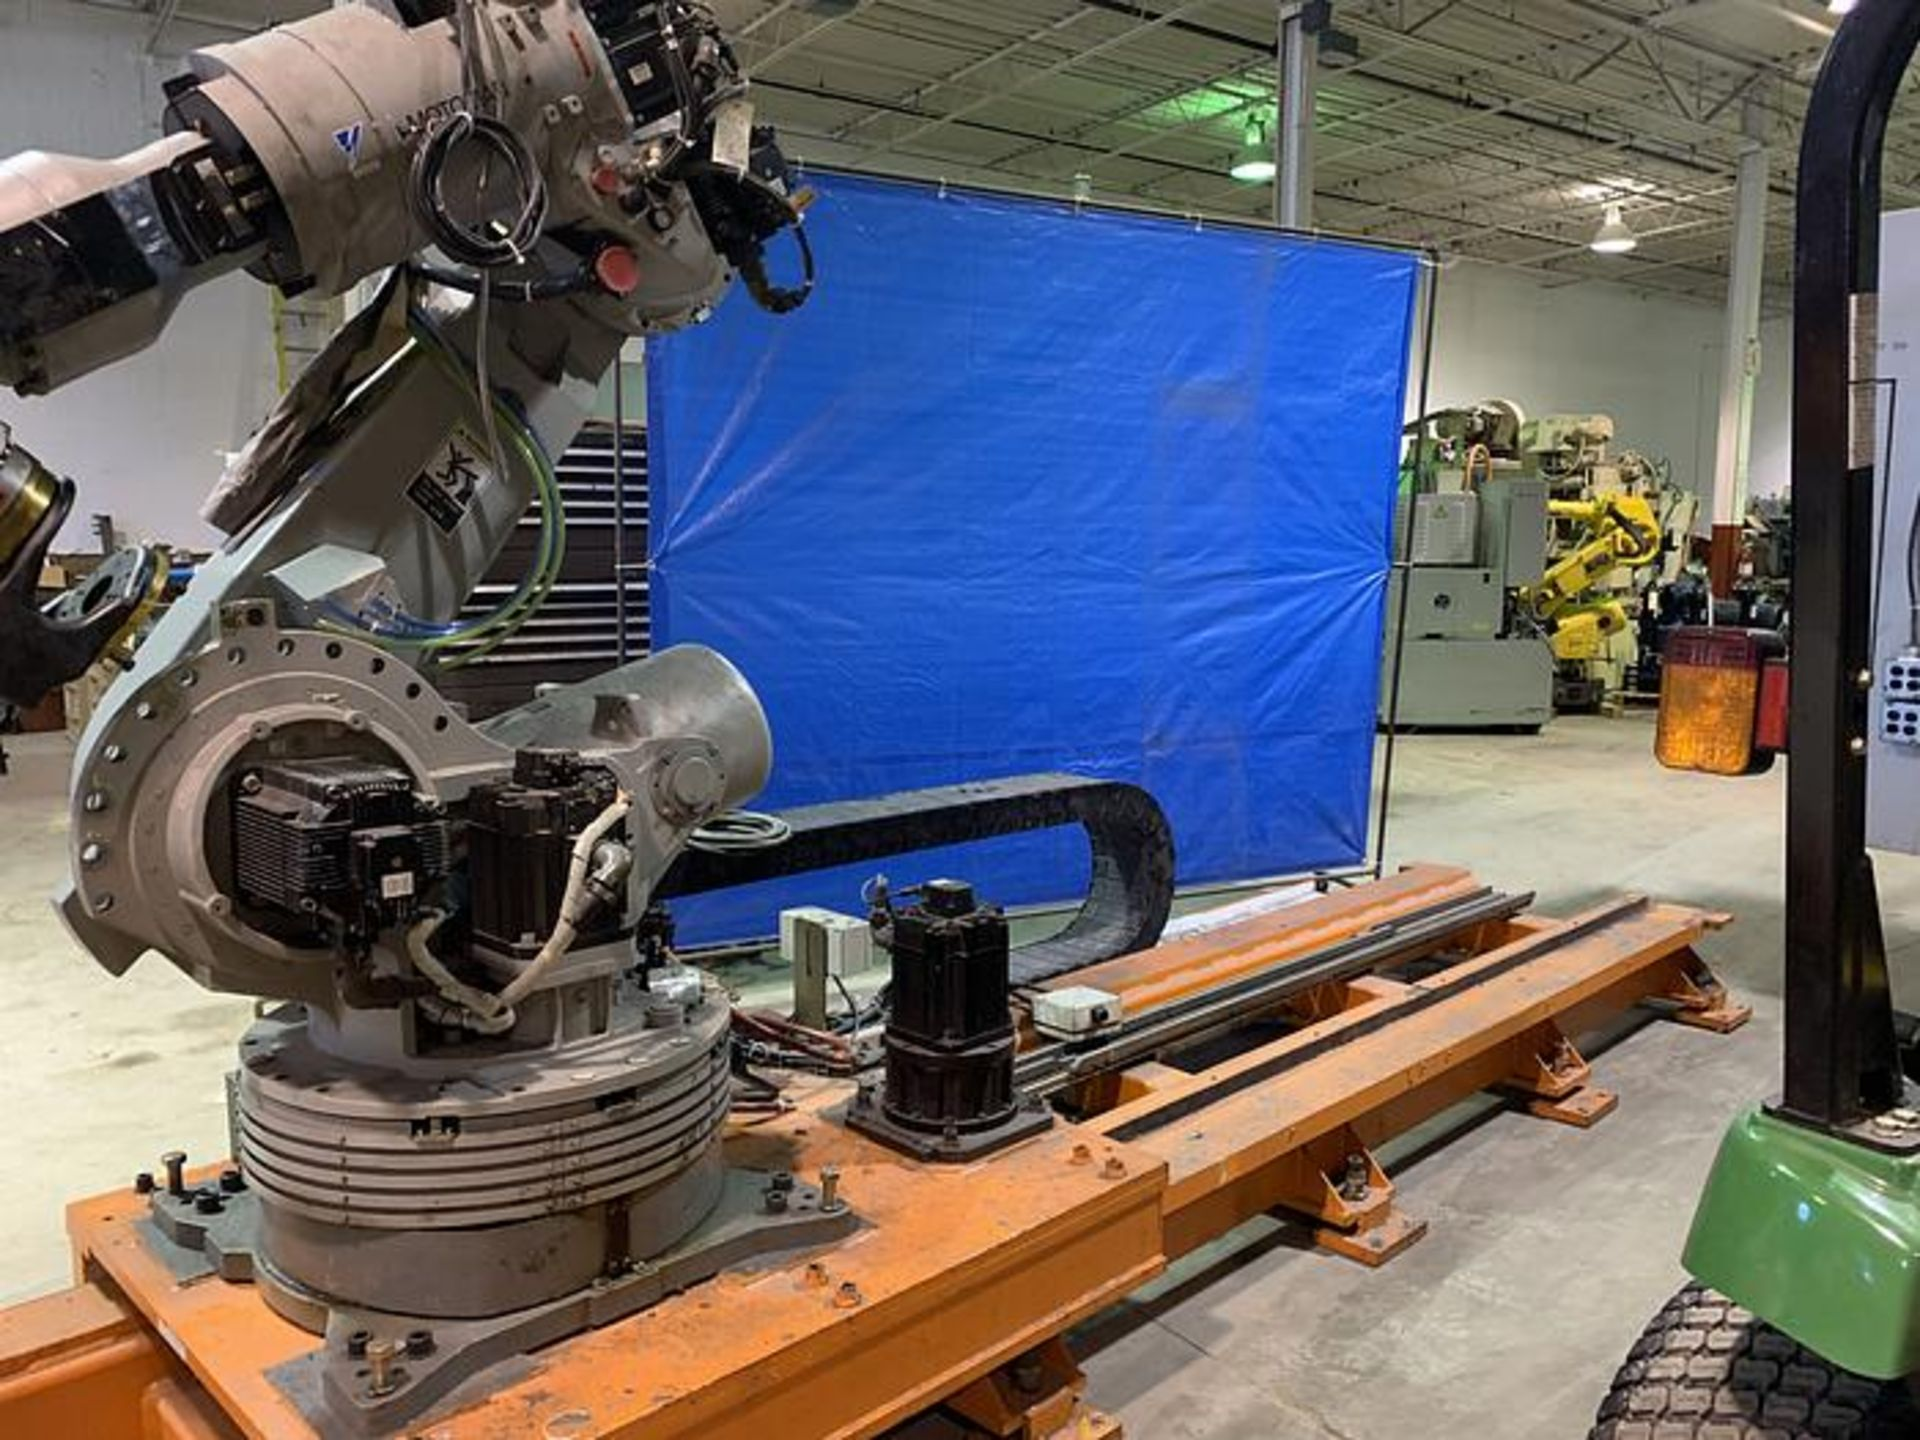 Lot 56 - MOTOMAN ES200N 6 AXIS CNC ROBOT WITH NX100 CONTROL ON 16' 7TH AXIS TRACK, YEAR 2063, SN S6N214-2-M